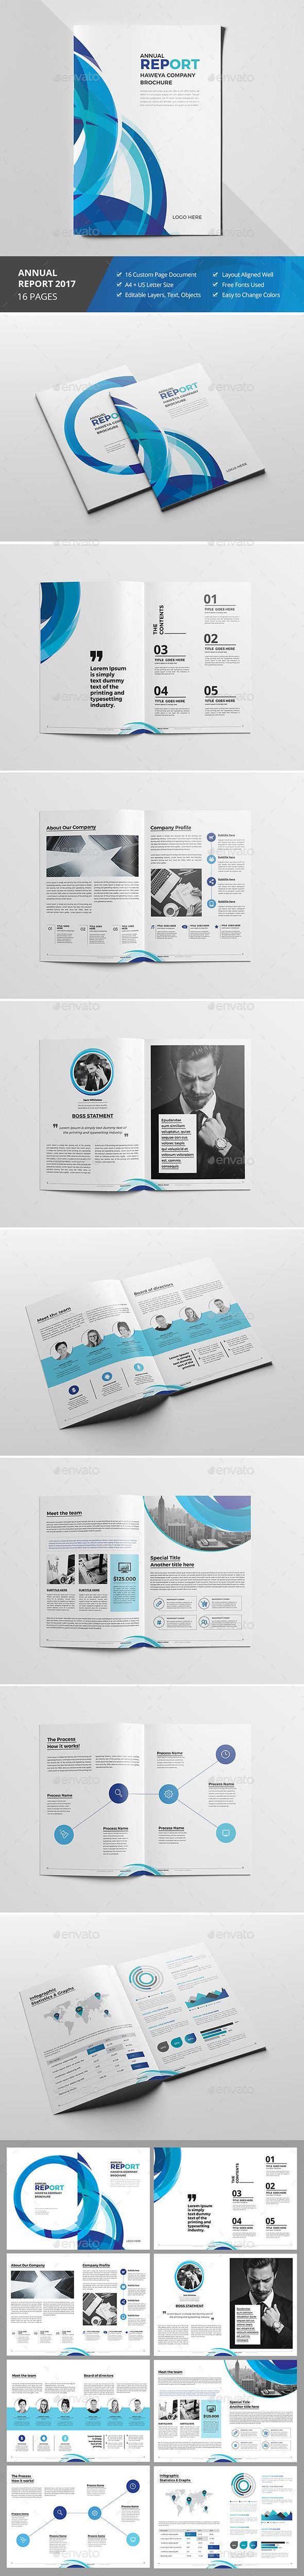 Haweya Clean Abstract Brochure Template InDesign INDD. Download here: https://graphicriver.net/item/haweya-clean-abstract-brochure/17184951?ref=ksioks